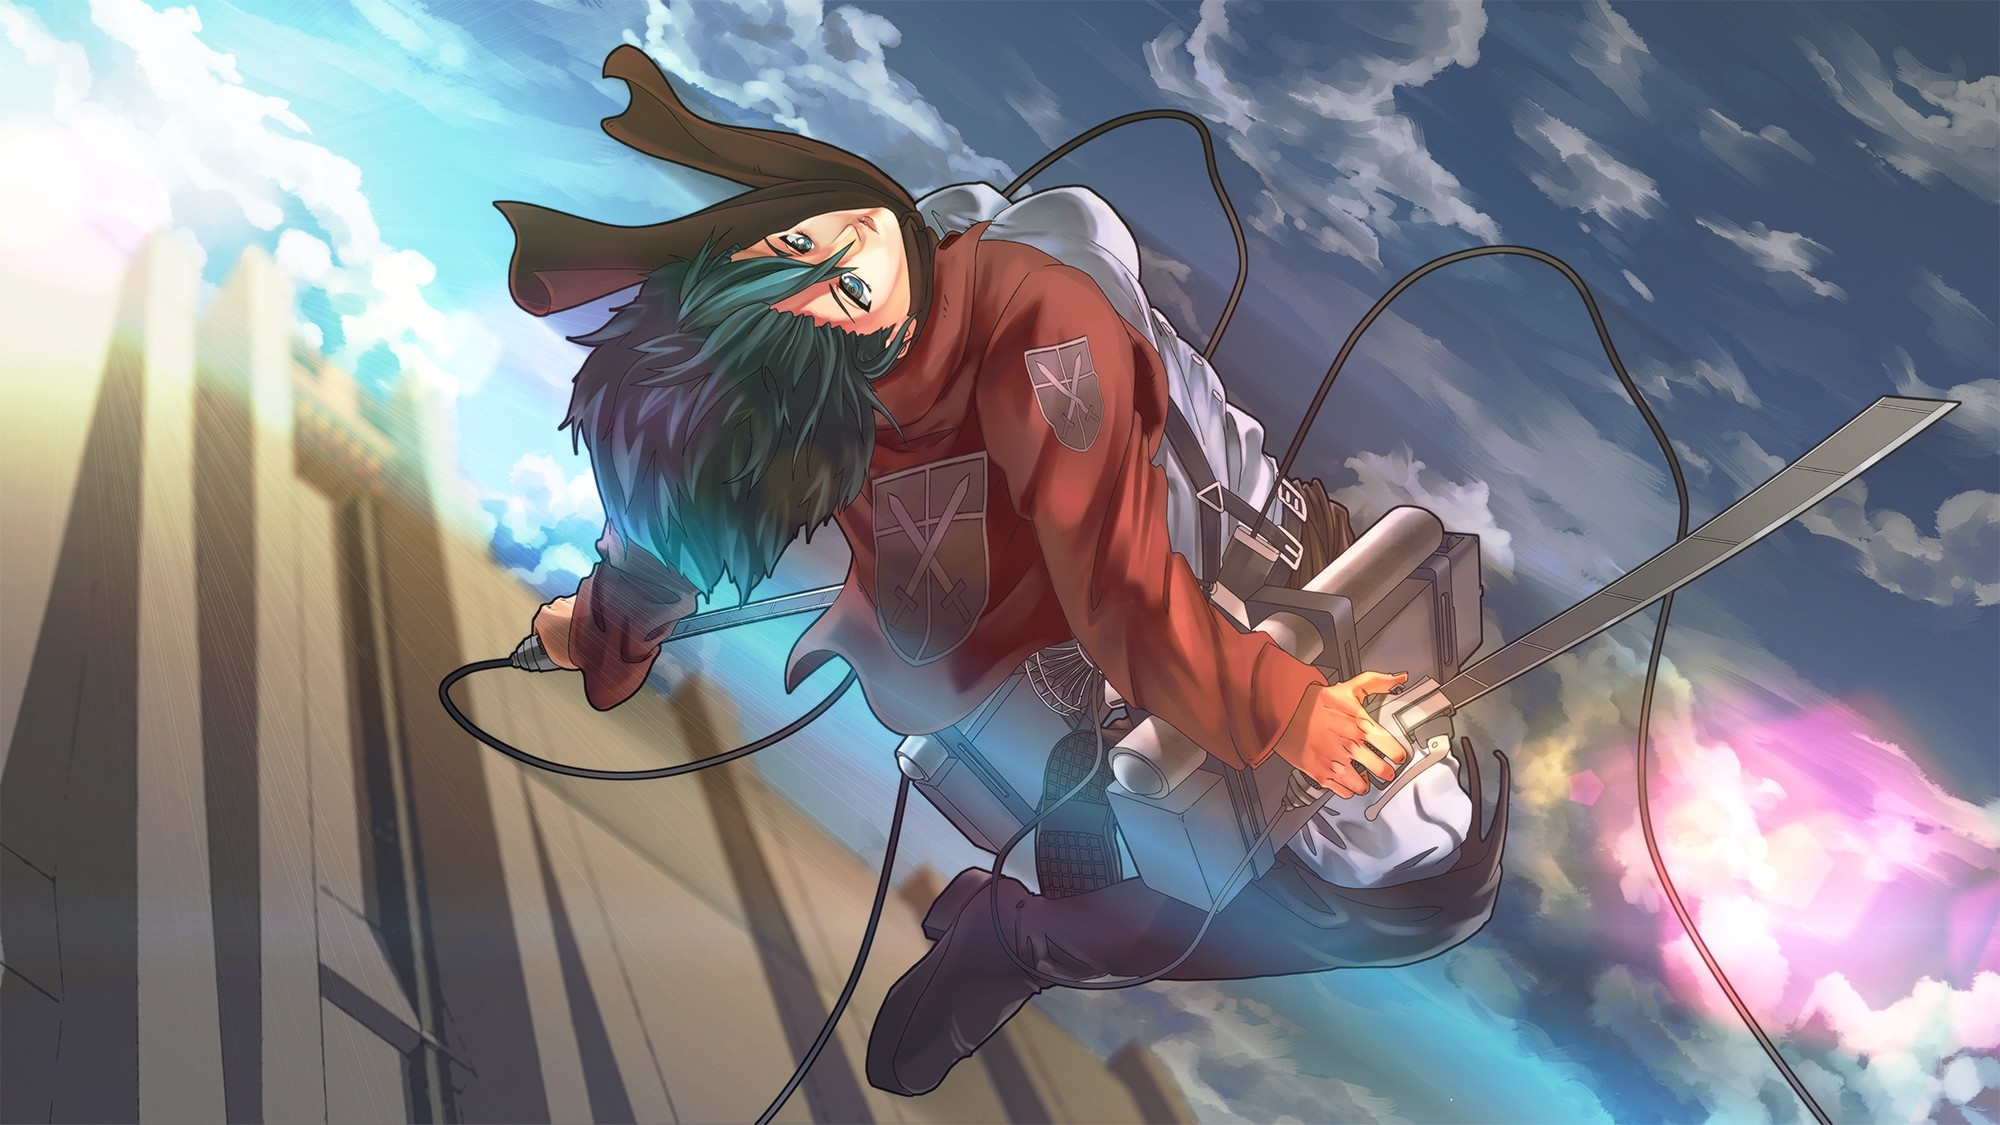 Enjoy our curated selection of 768 mikasa ackerman wallpapers and backgrounds from animes like attack on titan and attack on titan: Attack on Titan Mikasa Ackerman Wallpapers (82+ images)